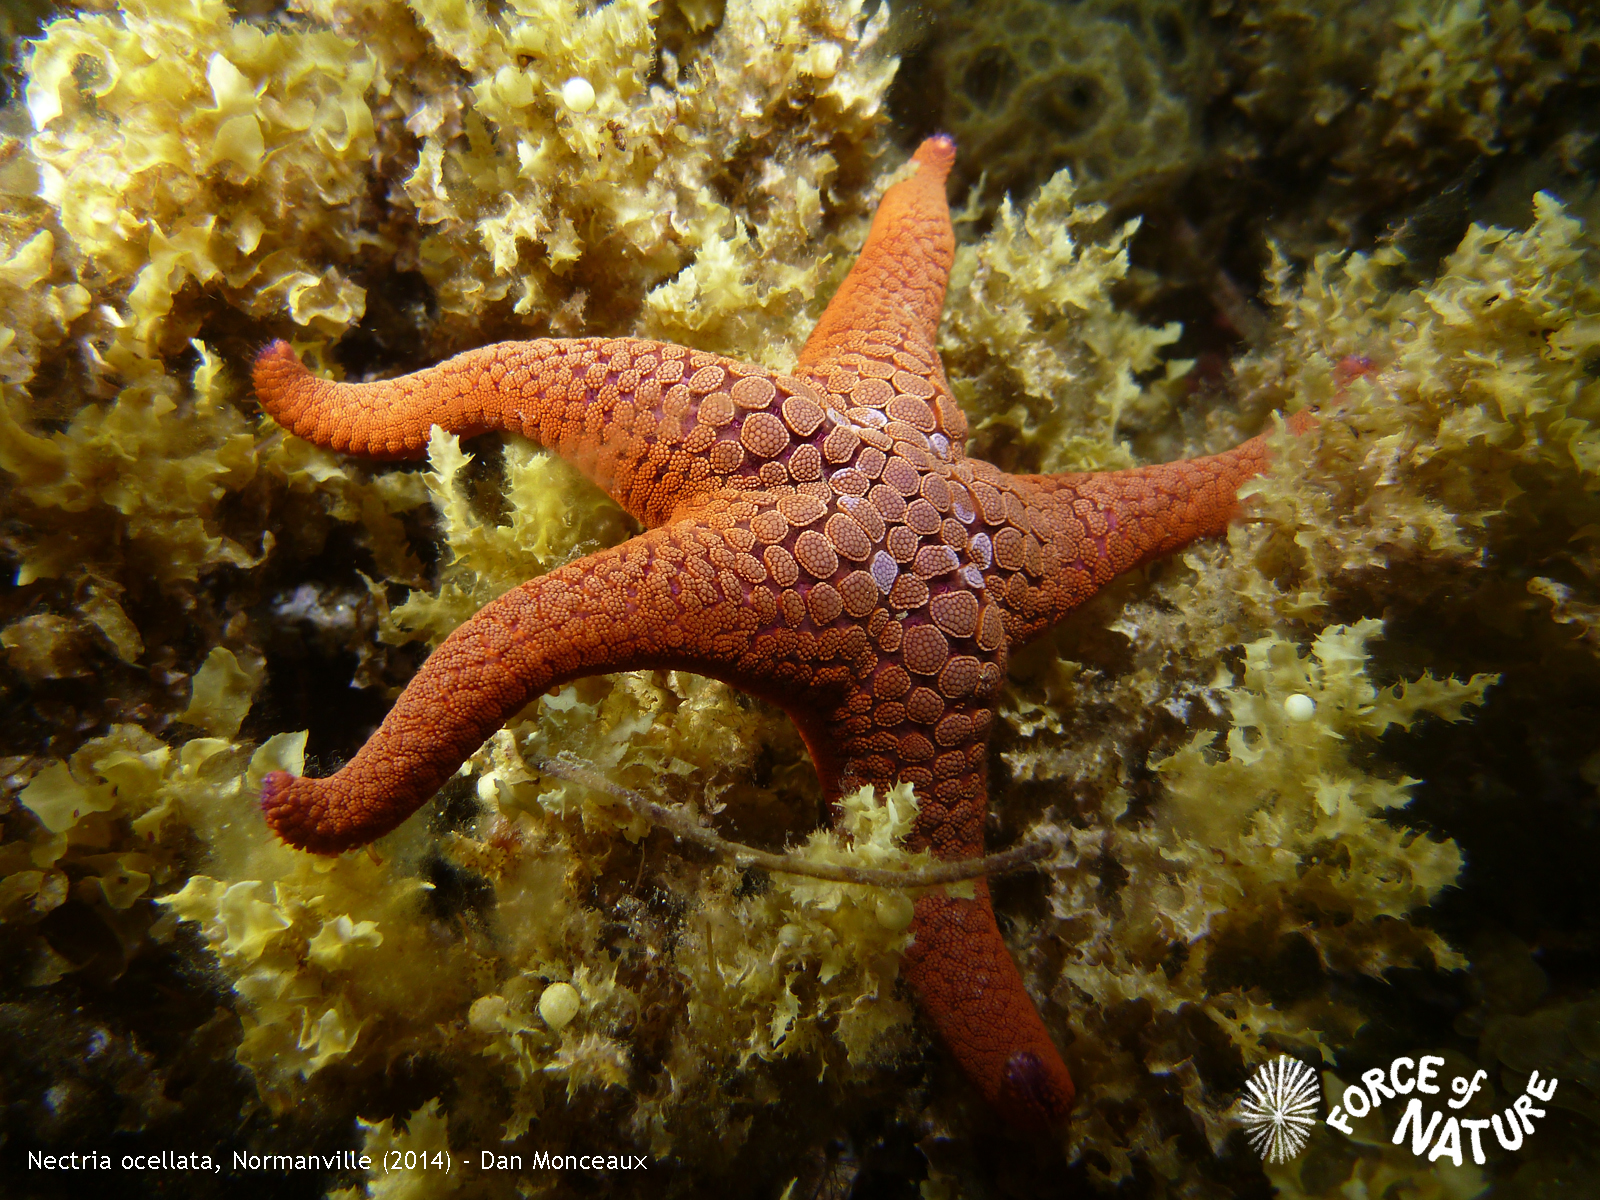 Call for entries: Underwater South Australia photography exhibition (Fleurieu Edition)